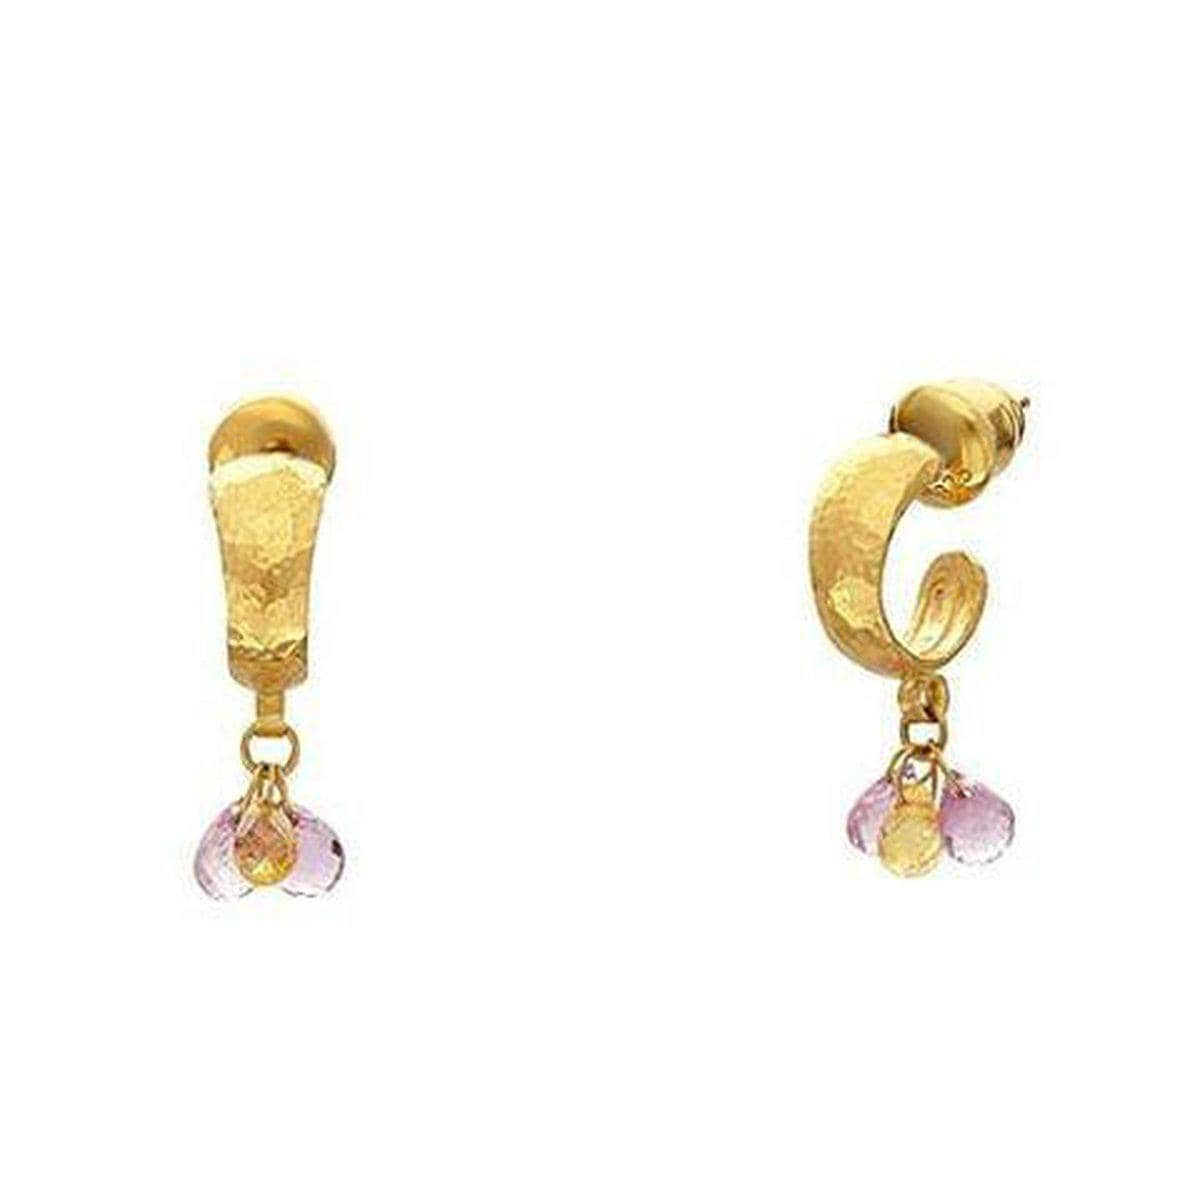 Delicate Hue 24K Gold Sapphire Mix Earrings - DE957-FSB-3MX-PY-GURHAN-Renee Taylor Gallery